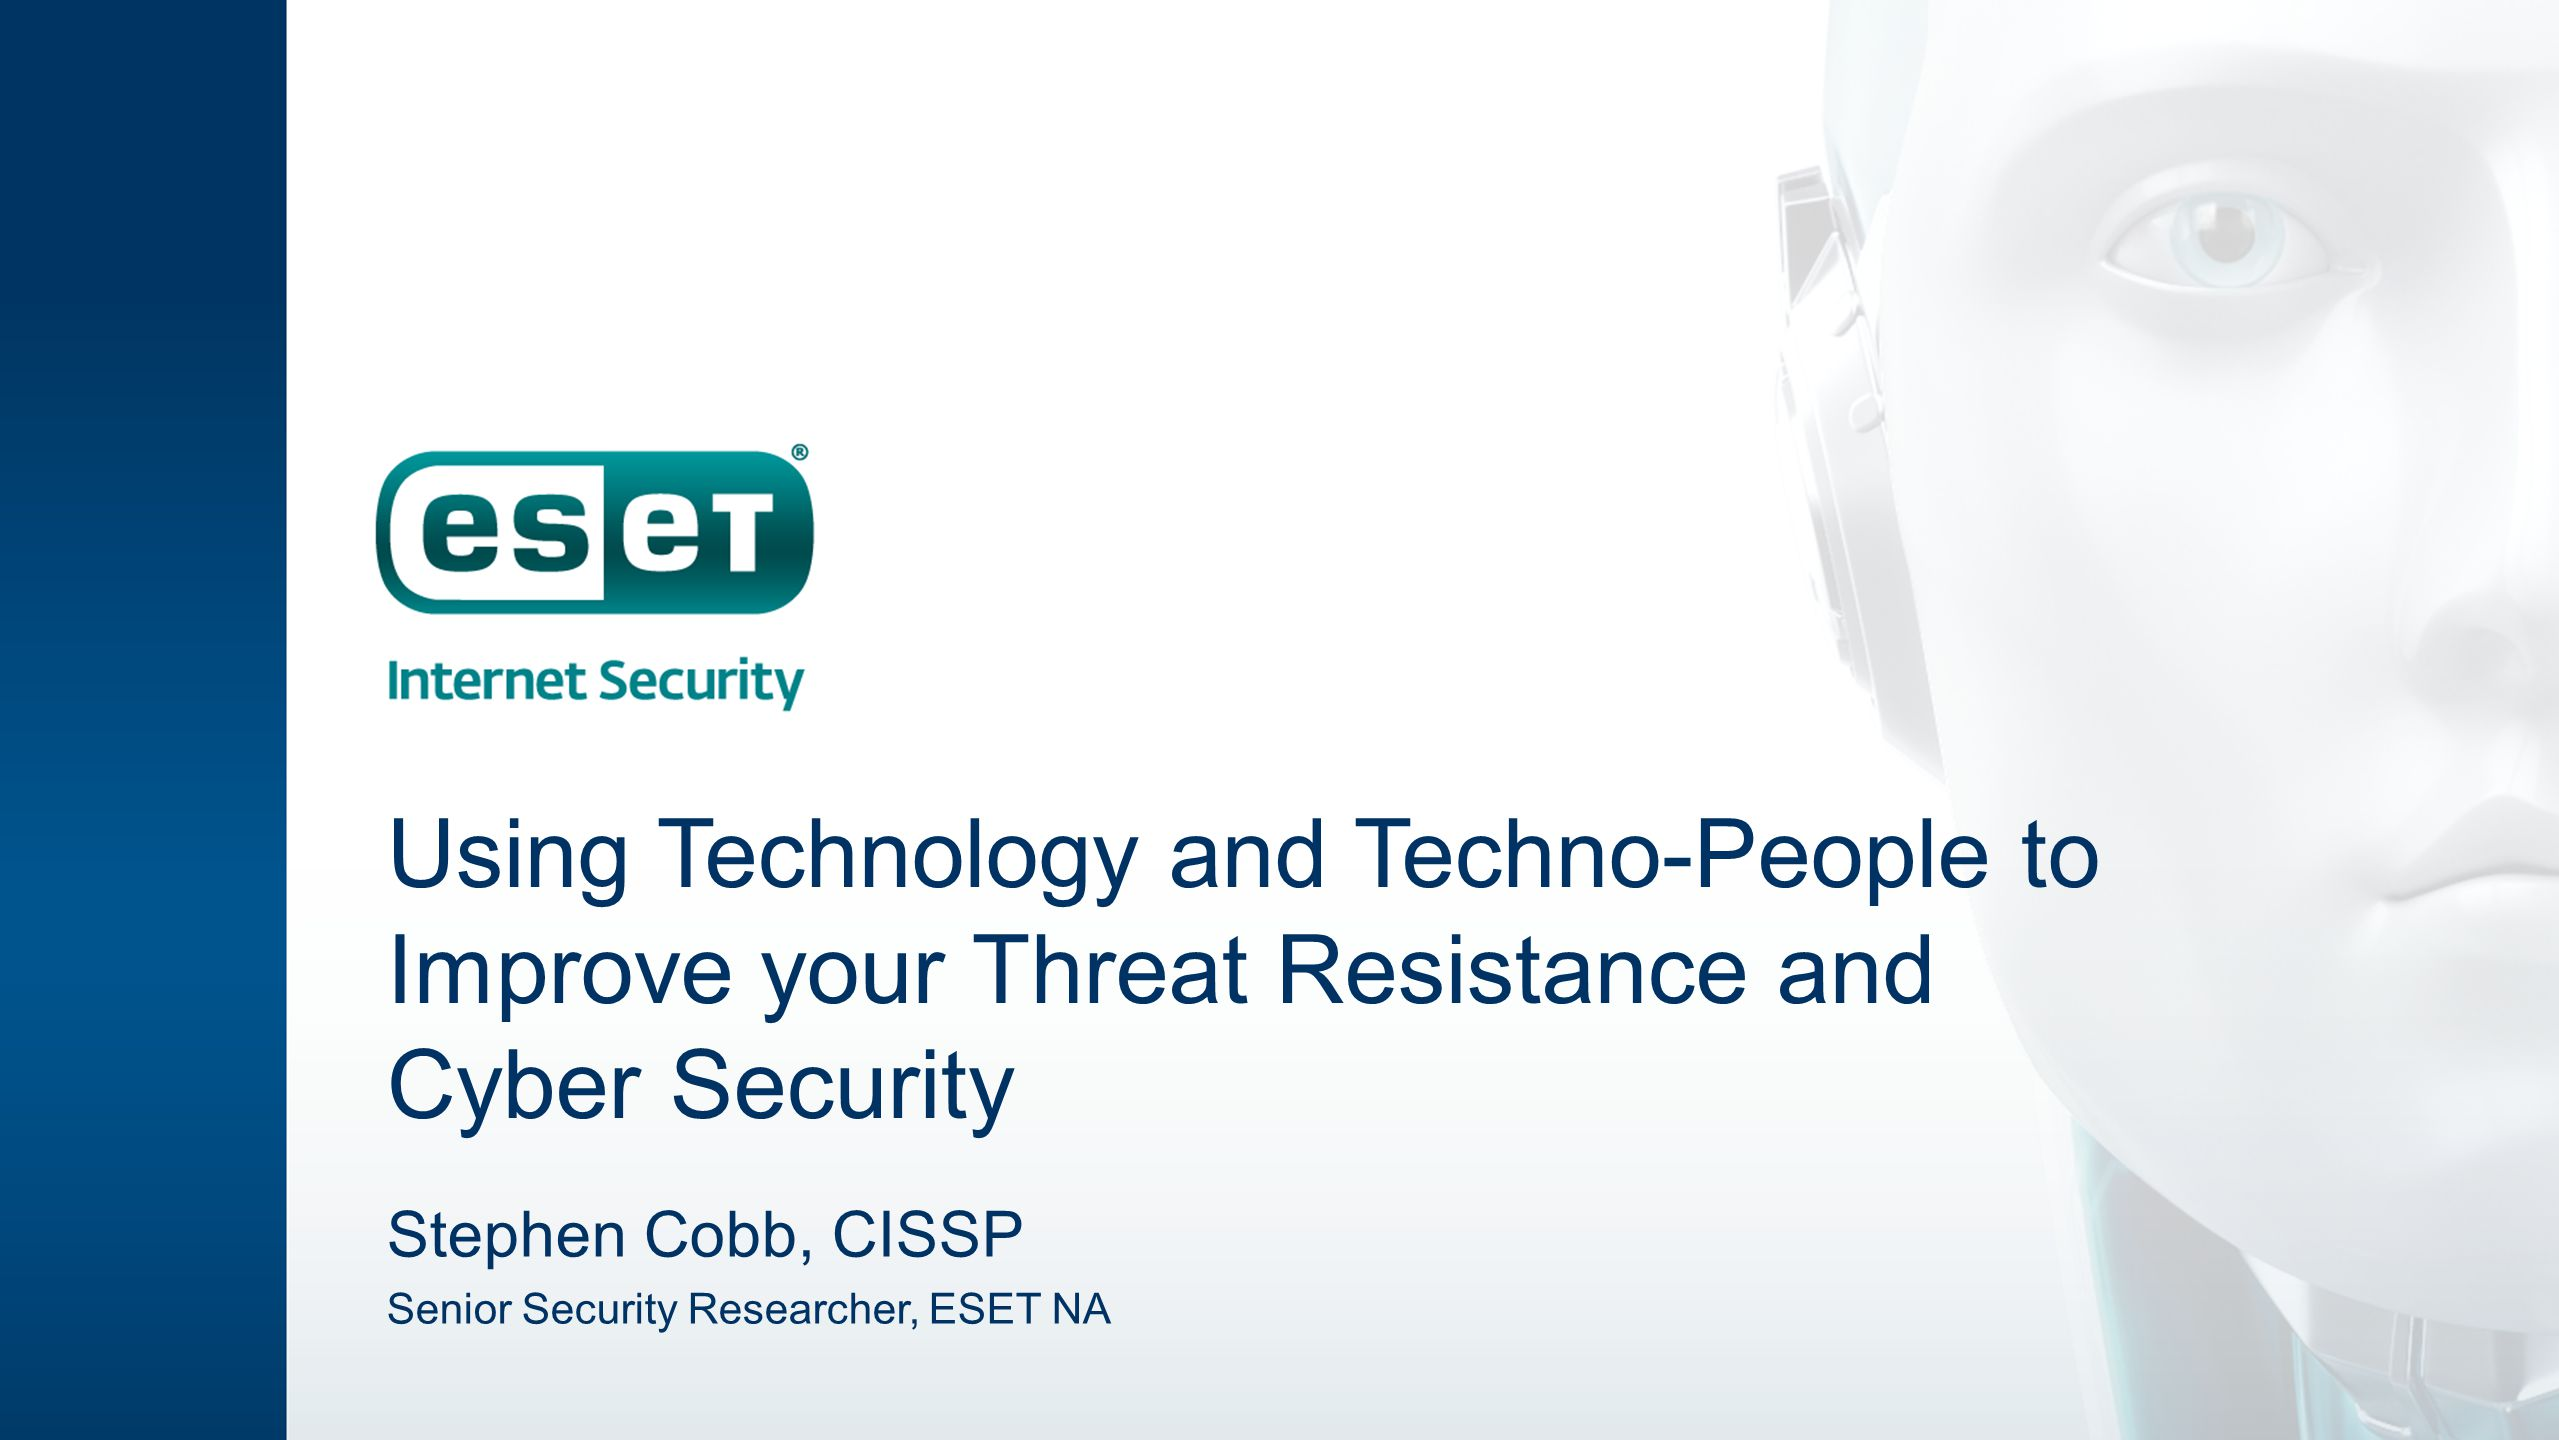 Using Technology and Techno-People to Improve your Threat Resistance and Cyber Security Stephen Cobb, CISSP Senior Security Researcher, ESET NA